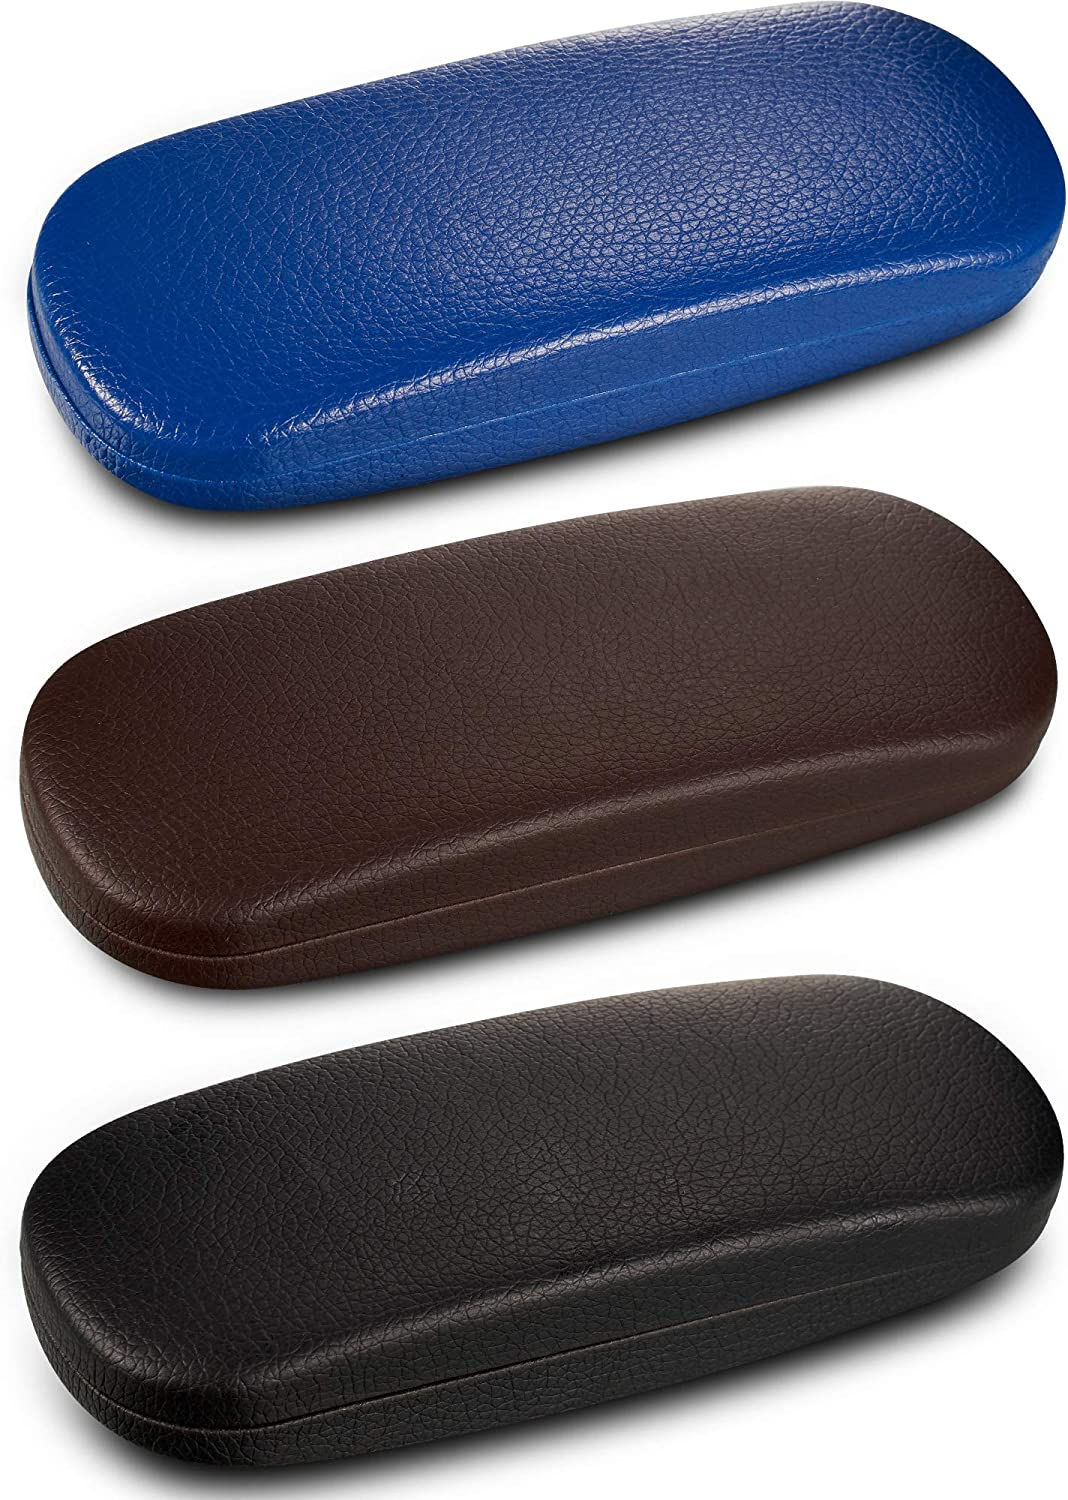 3 Pieces Hard Shell Glasses Eyeglasses Sunglasses Case with Eyeglass Cloth (Grain Pattern)